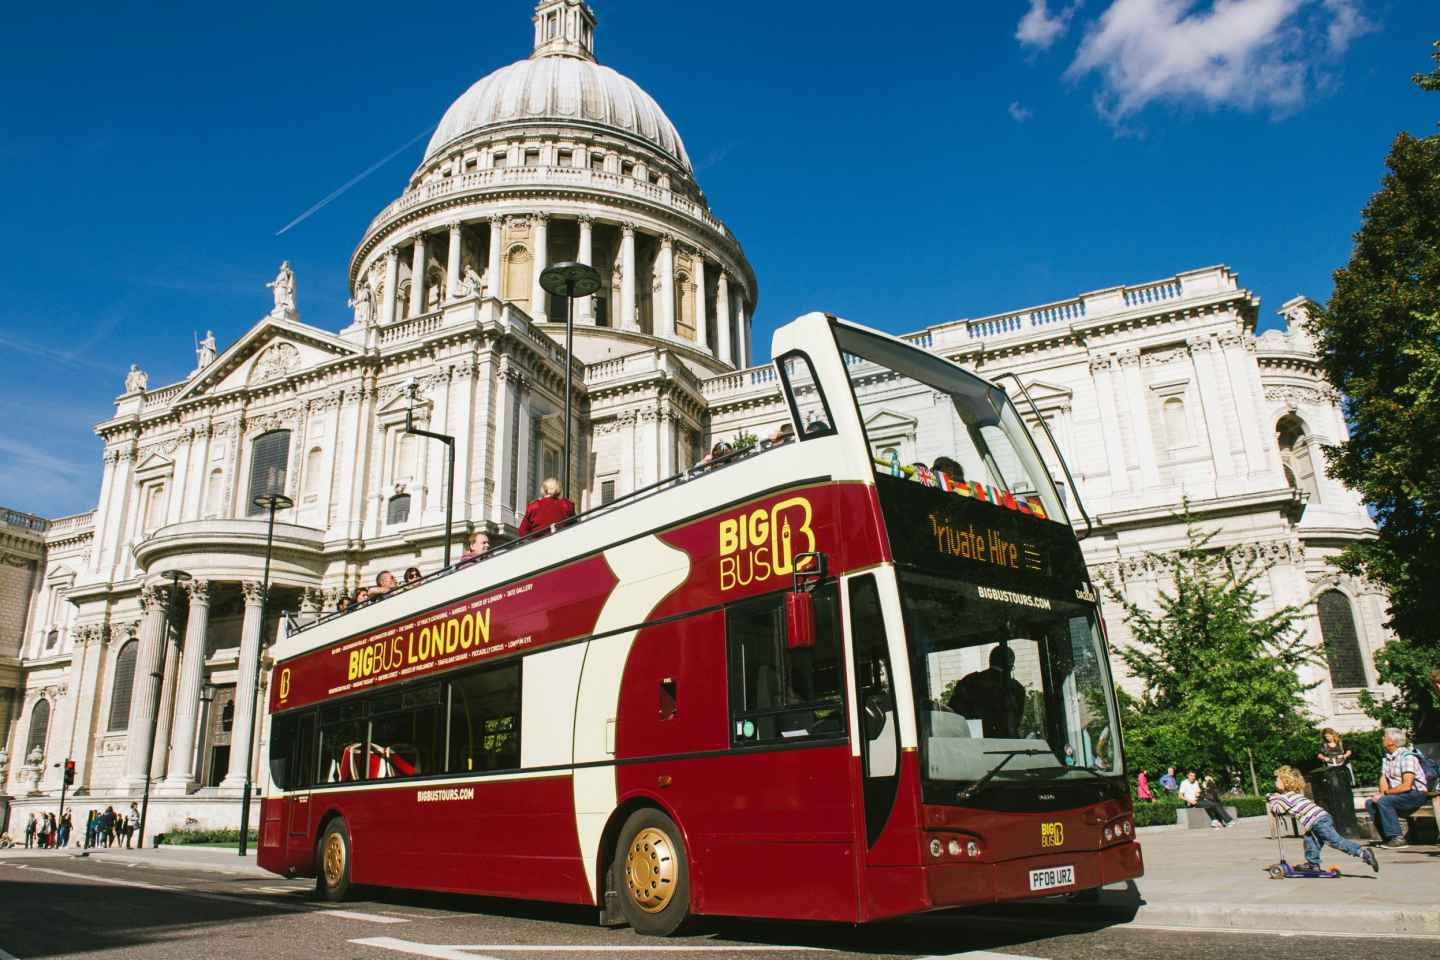 London: Big-Bus Open-Top Hop-On/Hop-Off Sightseeing-Tour